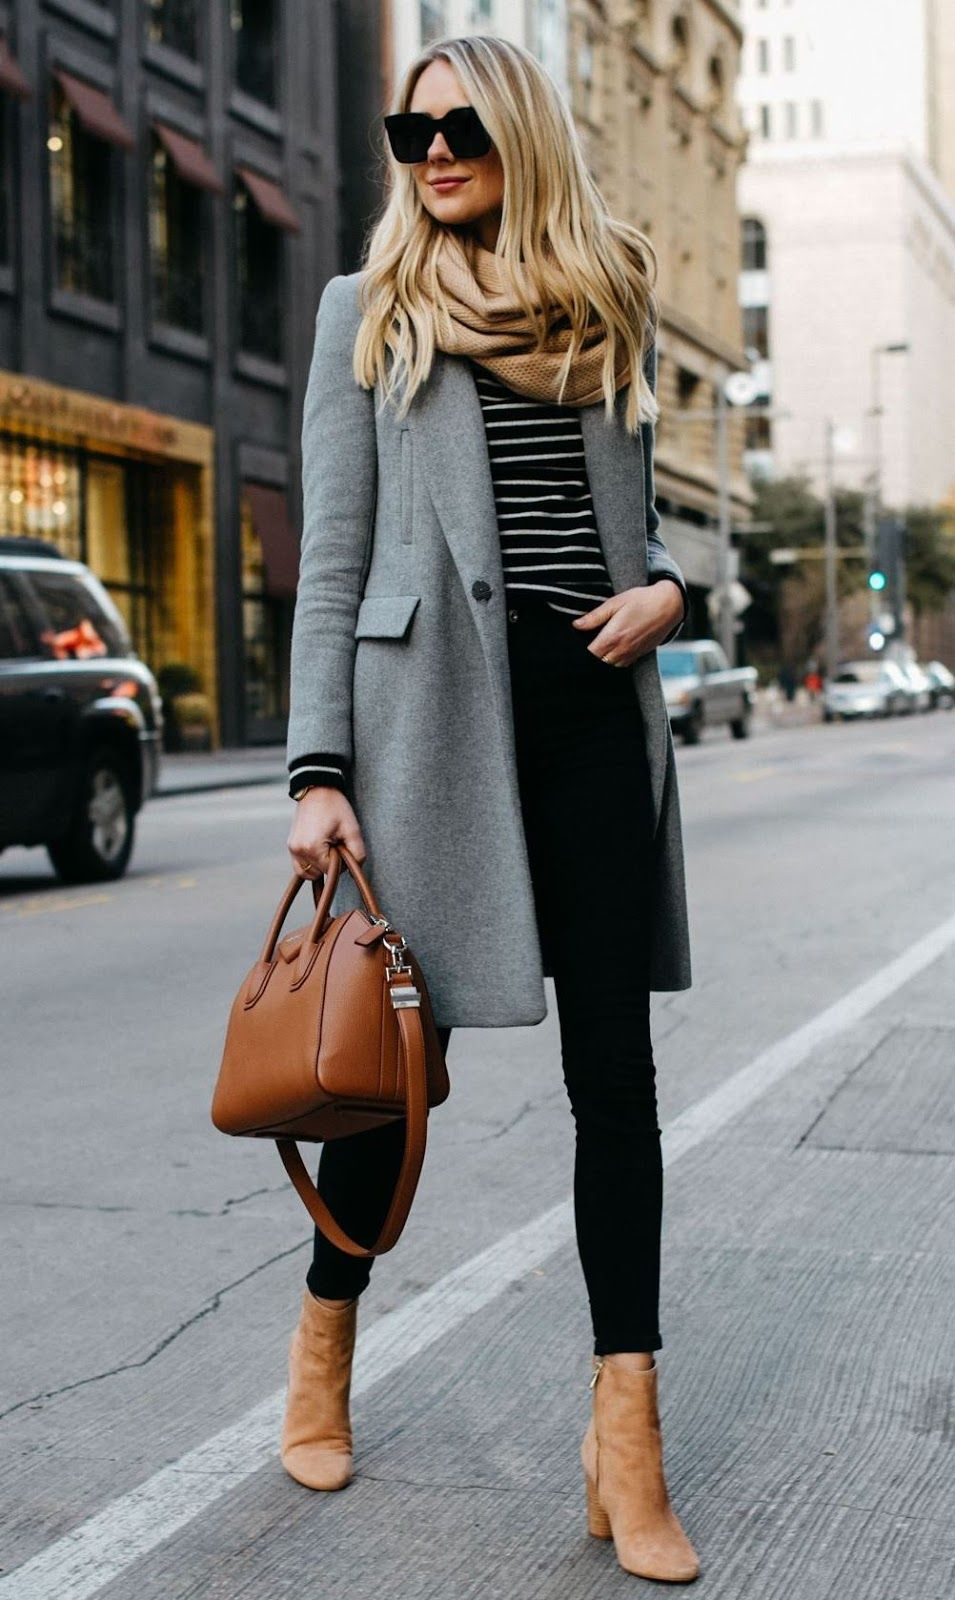 Genius Winter Outfit Idea Chic Winter Outfits Professional Work Outfit Casual Work Outfits Women